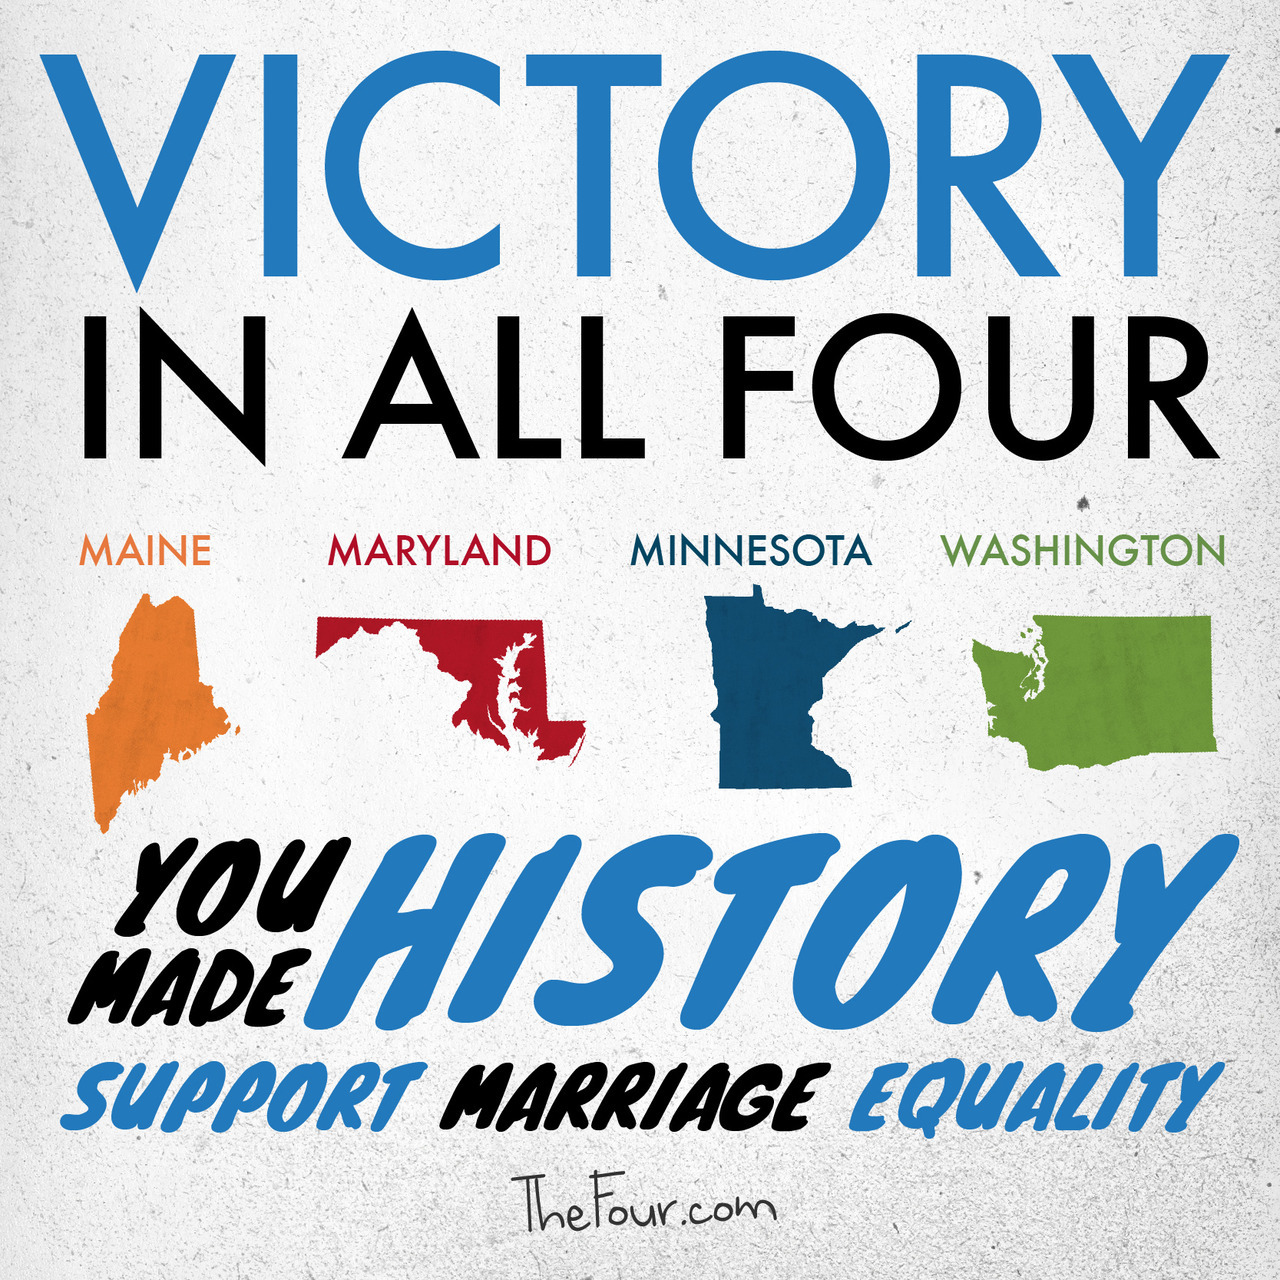 Victory in all Four: You made history! Support marriage equality. Thefour.com